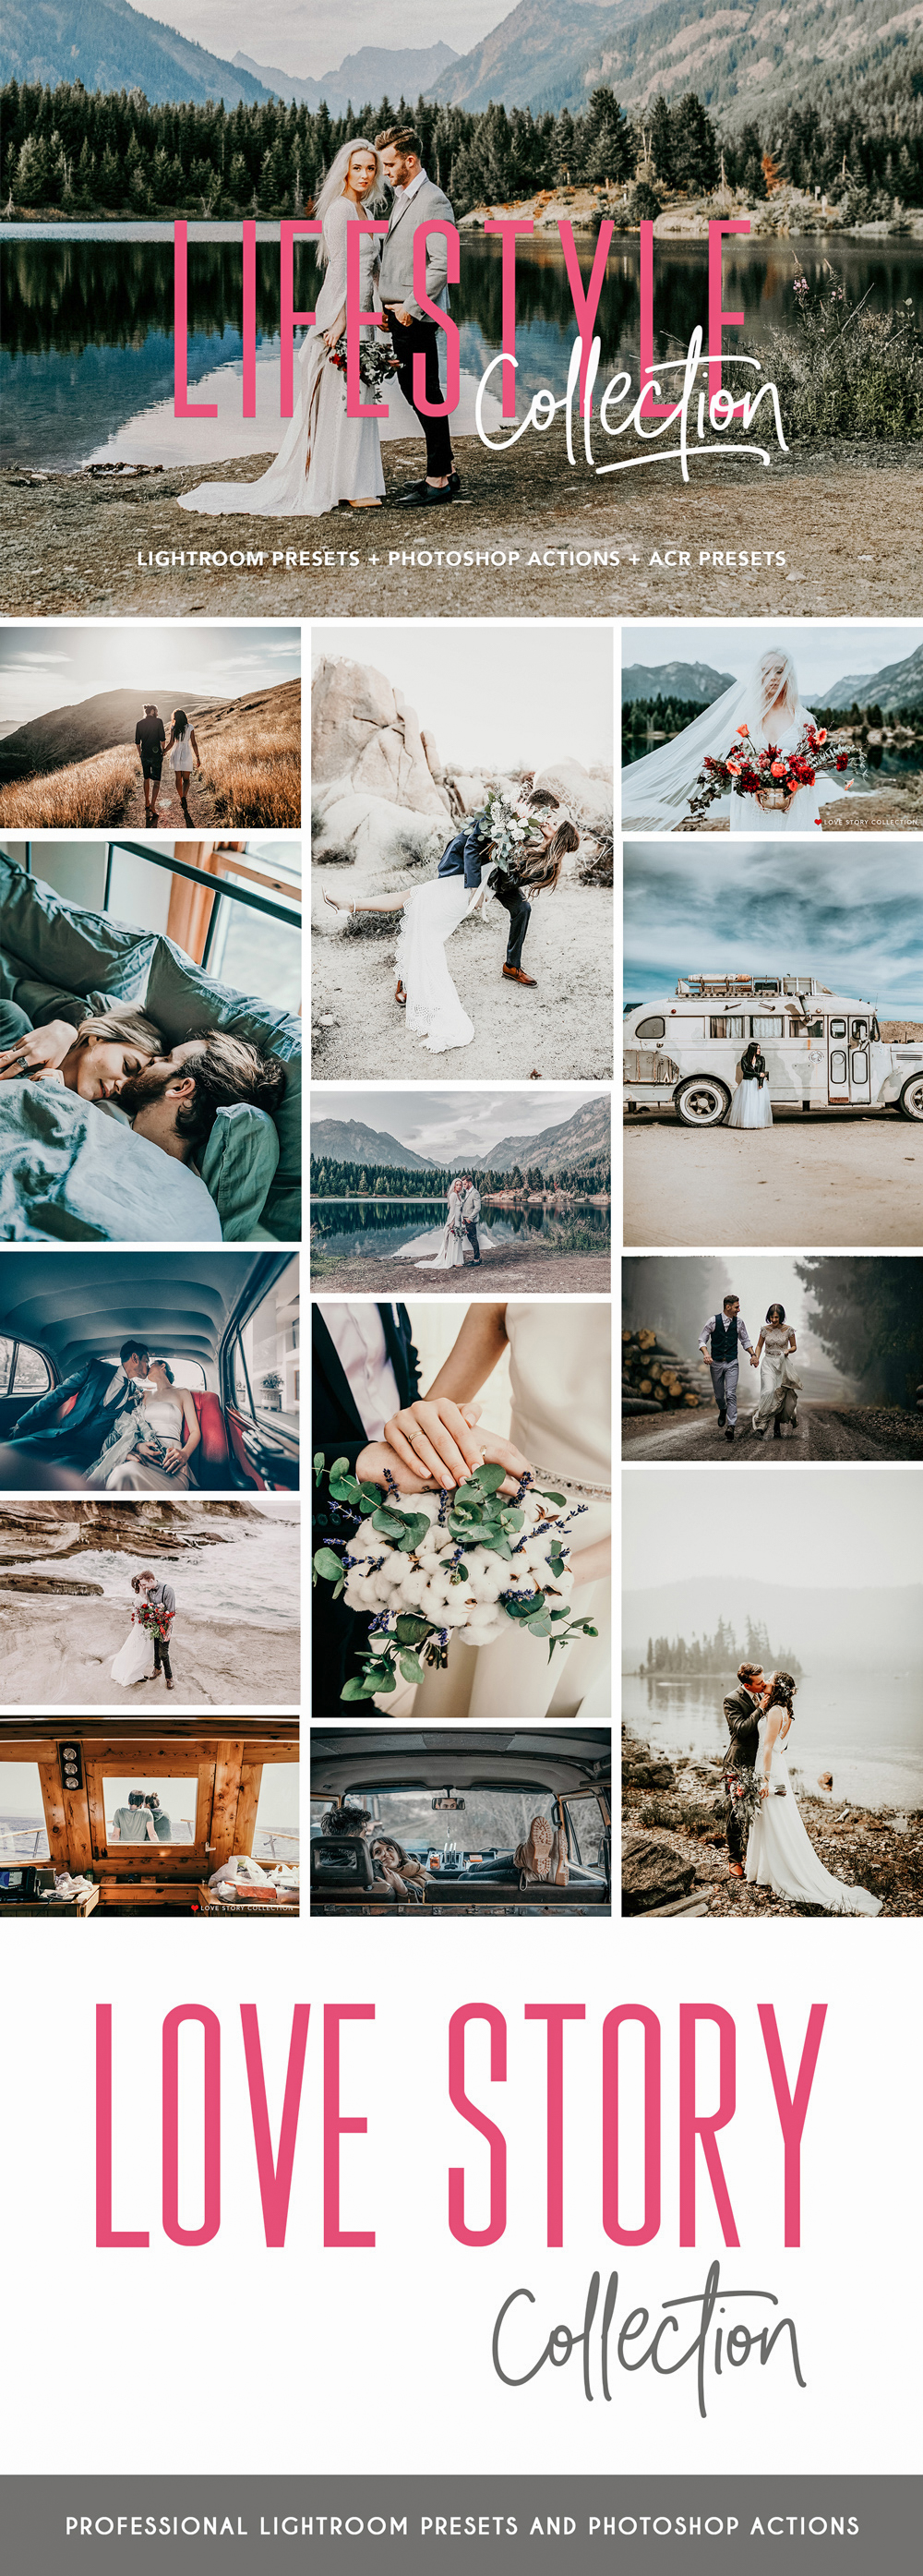 Lifestyle+Lightroom+presets+and+Photoshop+actions